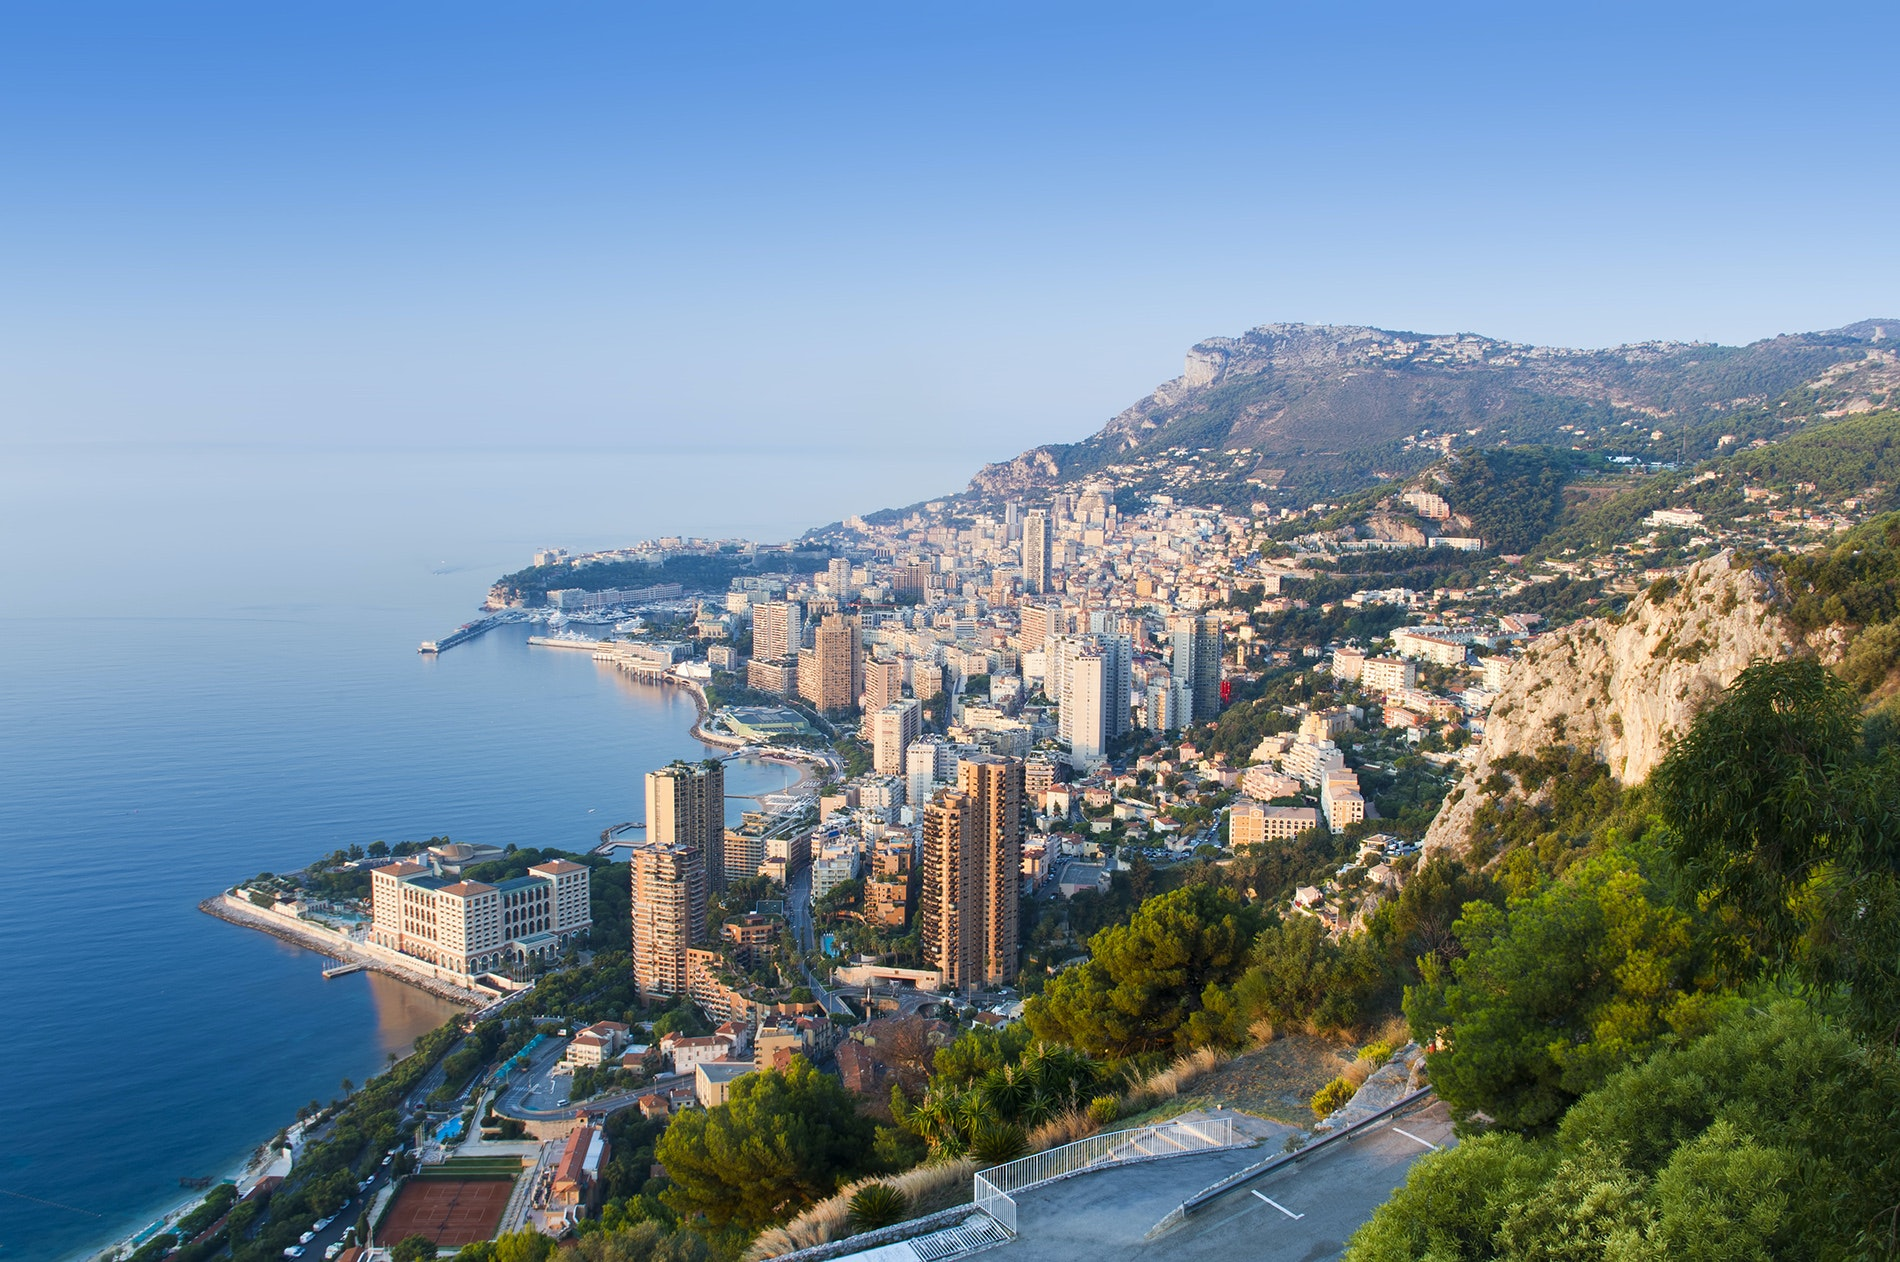 The 2019 travel forecast for Leos looks lucky: Consider rolling the dice on a vacation to Monte Carlo.